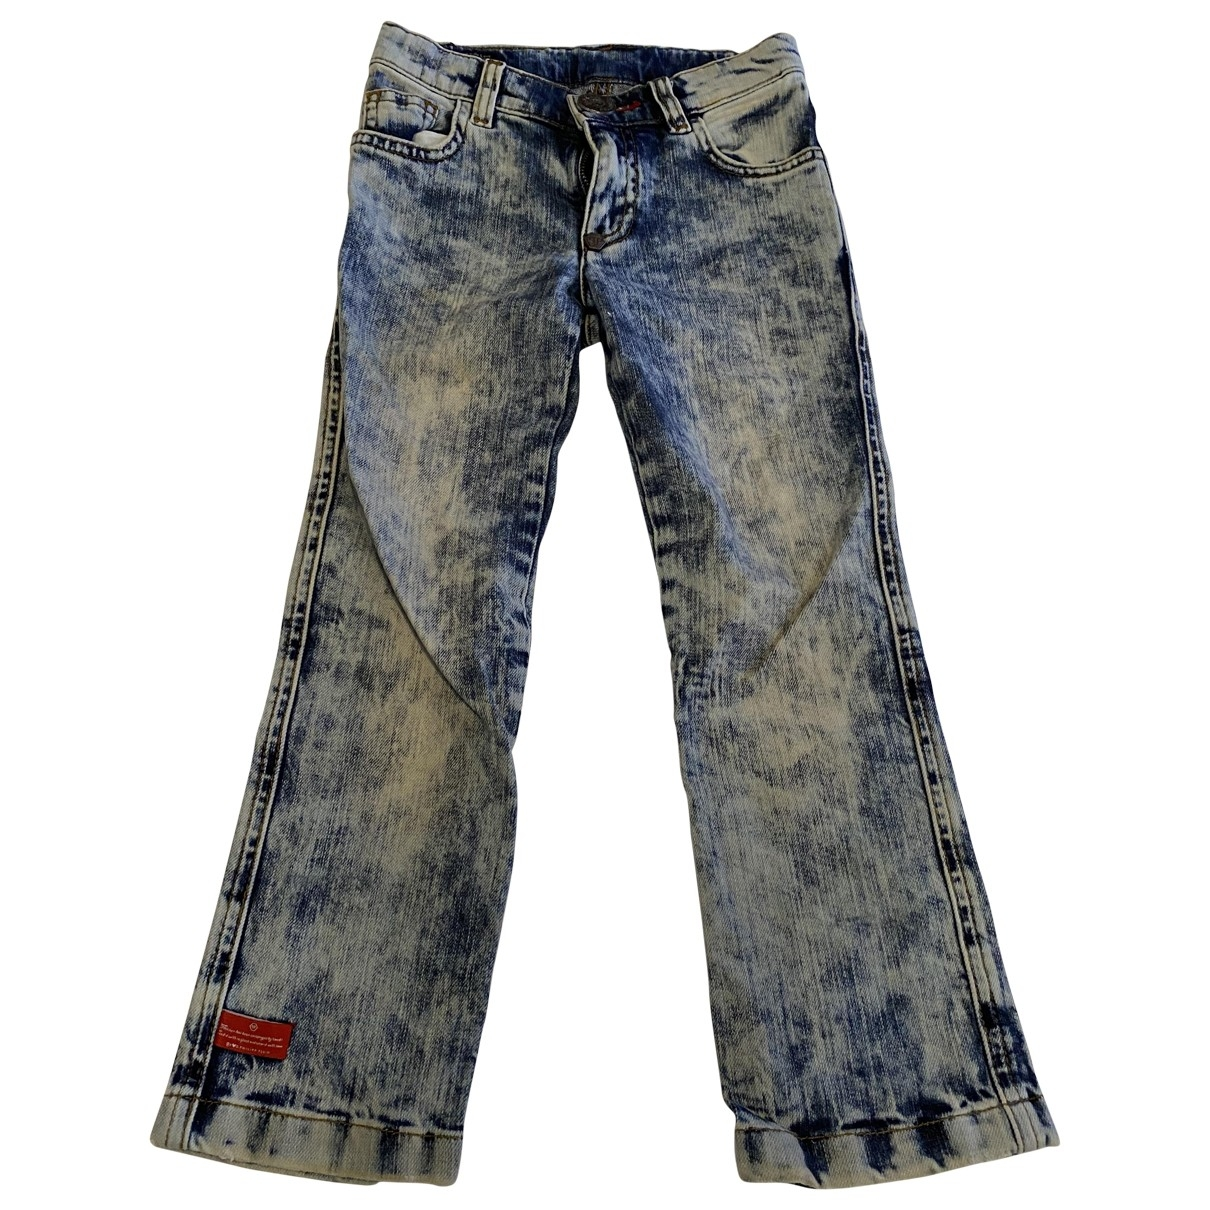 Philipp Plein \N Blue Denim - Jeans Trousers for Kids 4 years - until 40 inches UK